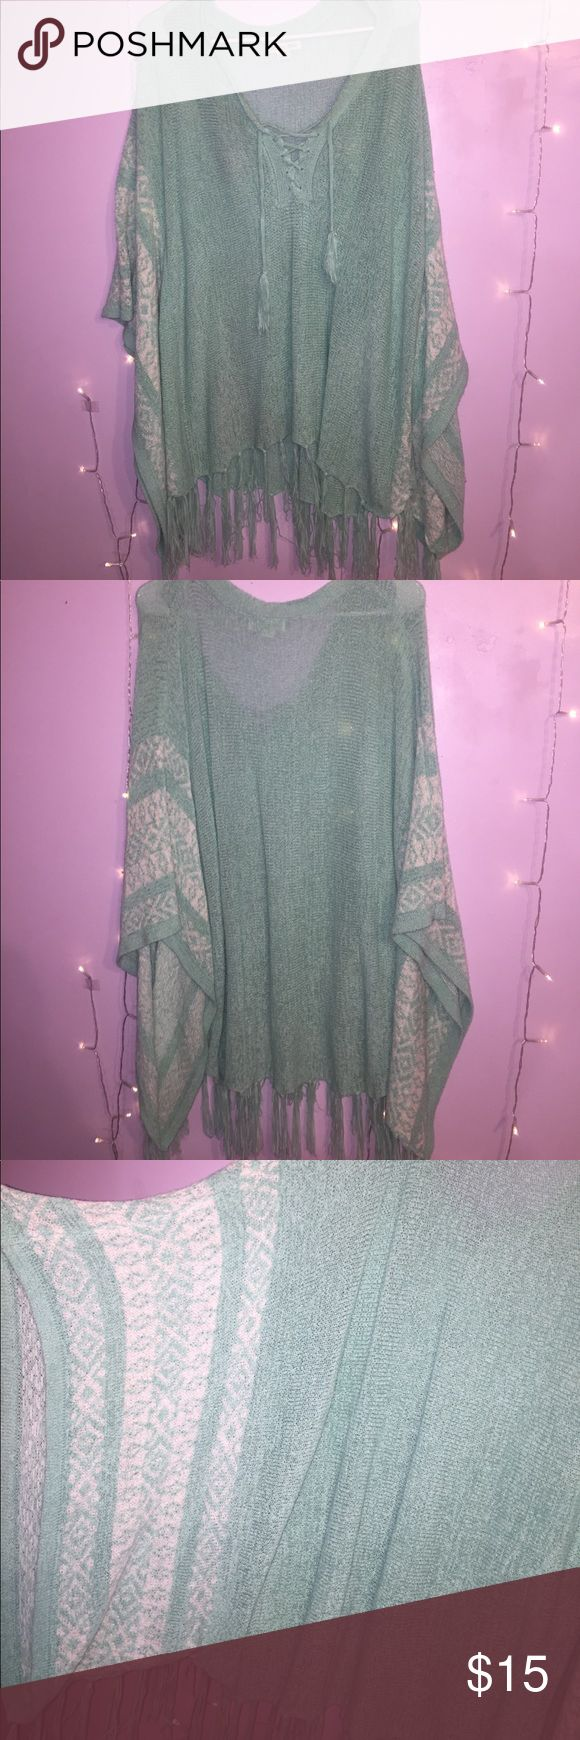 Batwing sleeved sweater Mint green batwing sleeved sweater wth fringes at the bottom and tie top on the chest area Sweaters Shrugs & Ponchos